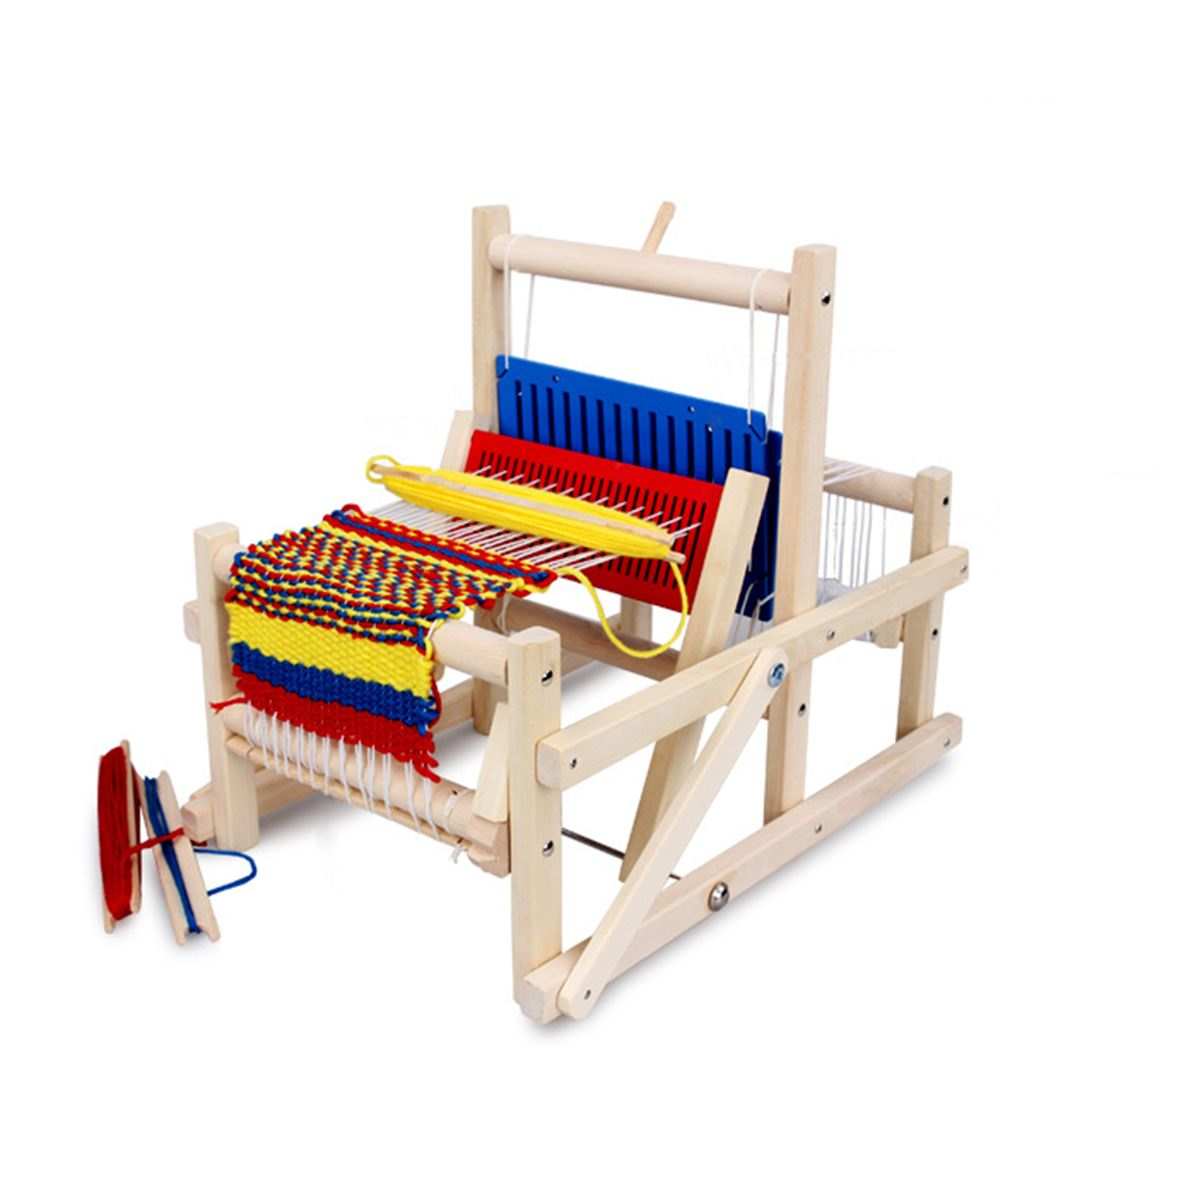 Traditional Wooden Weaving Loom Educational Toy Craft Box Knitting Hooking Set